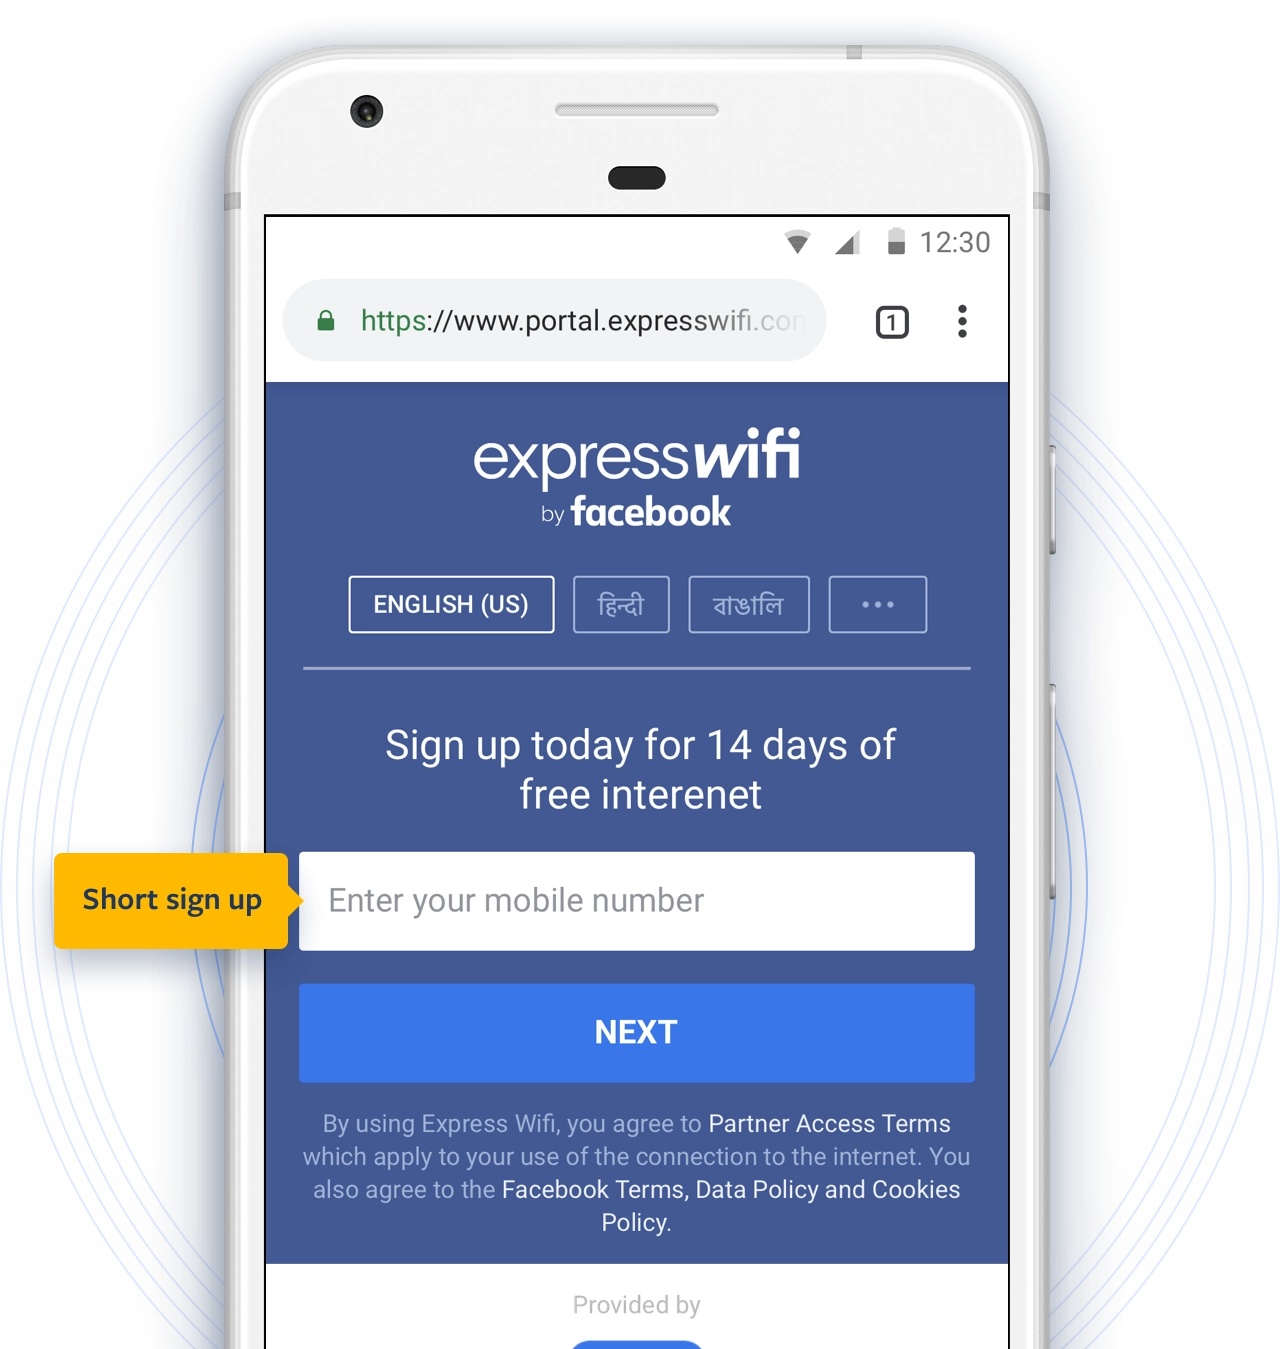 Express WiFi by Facebook